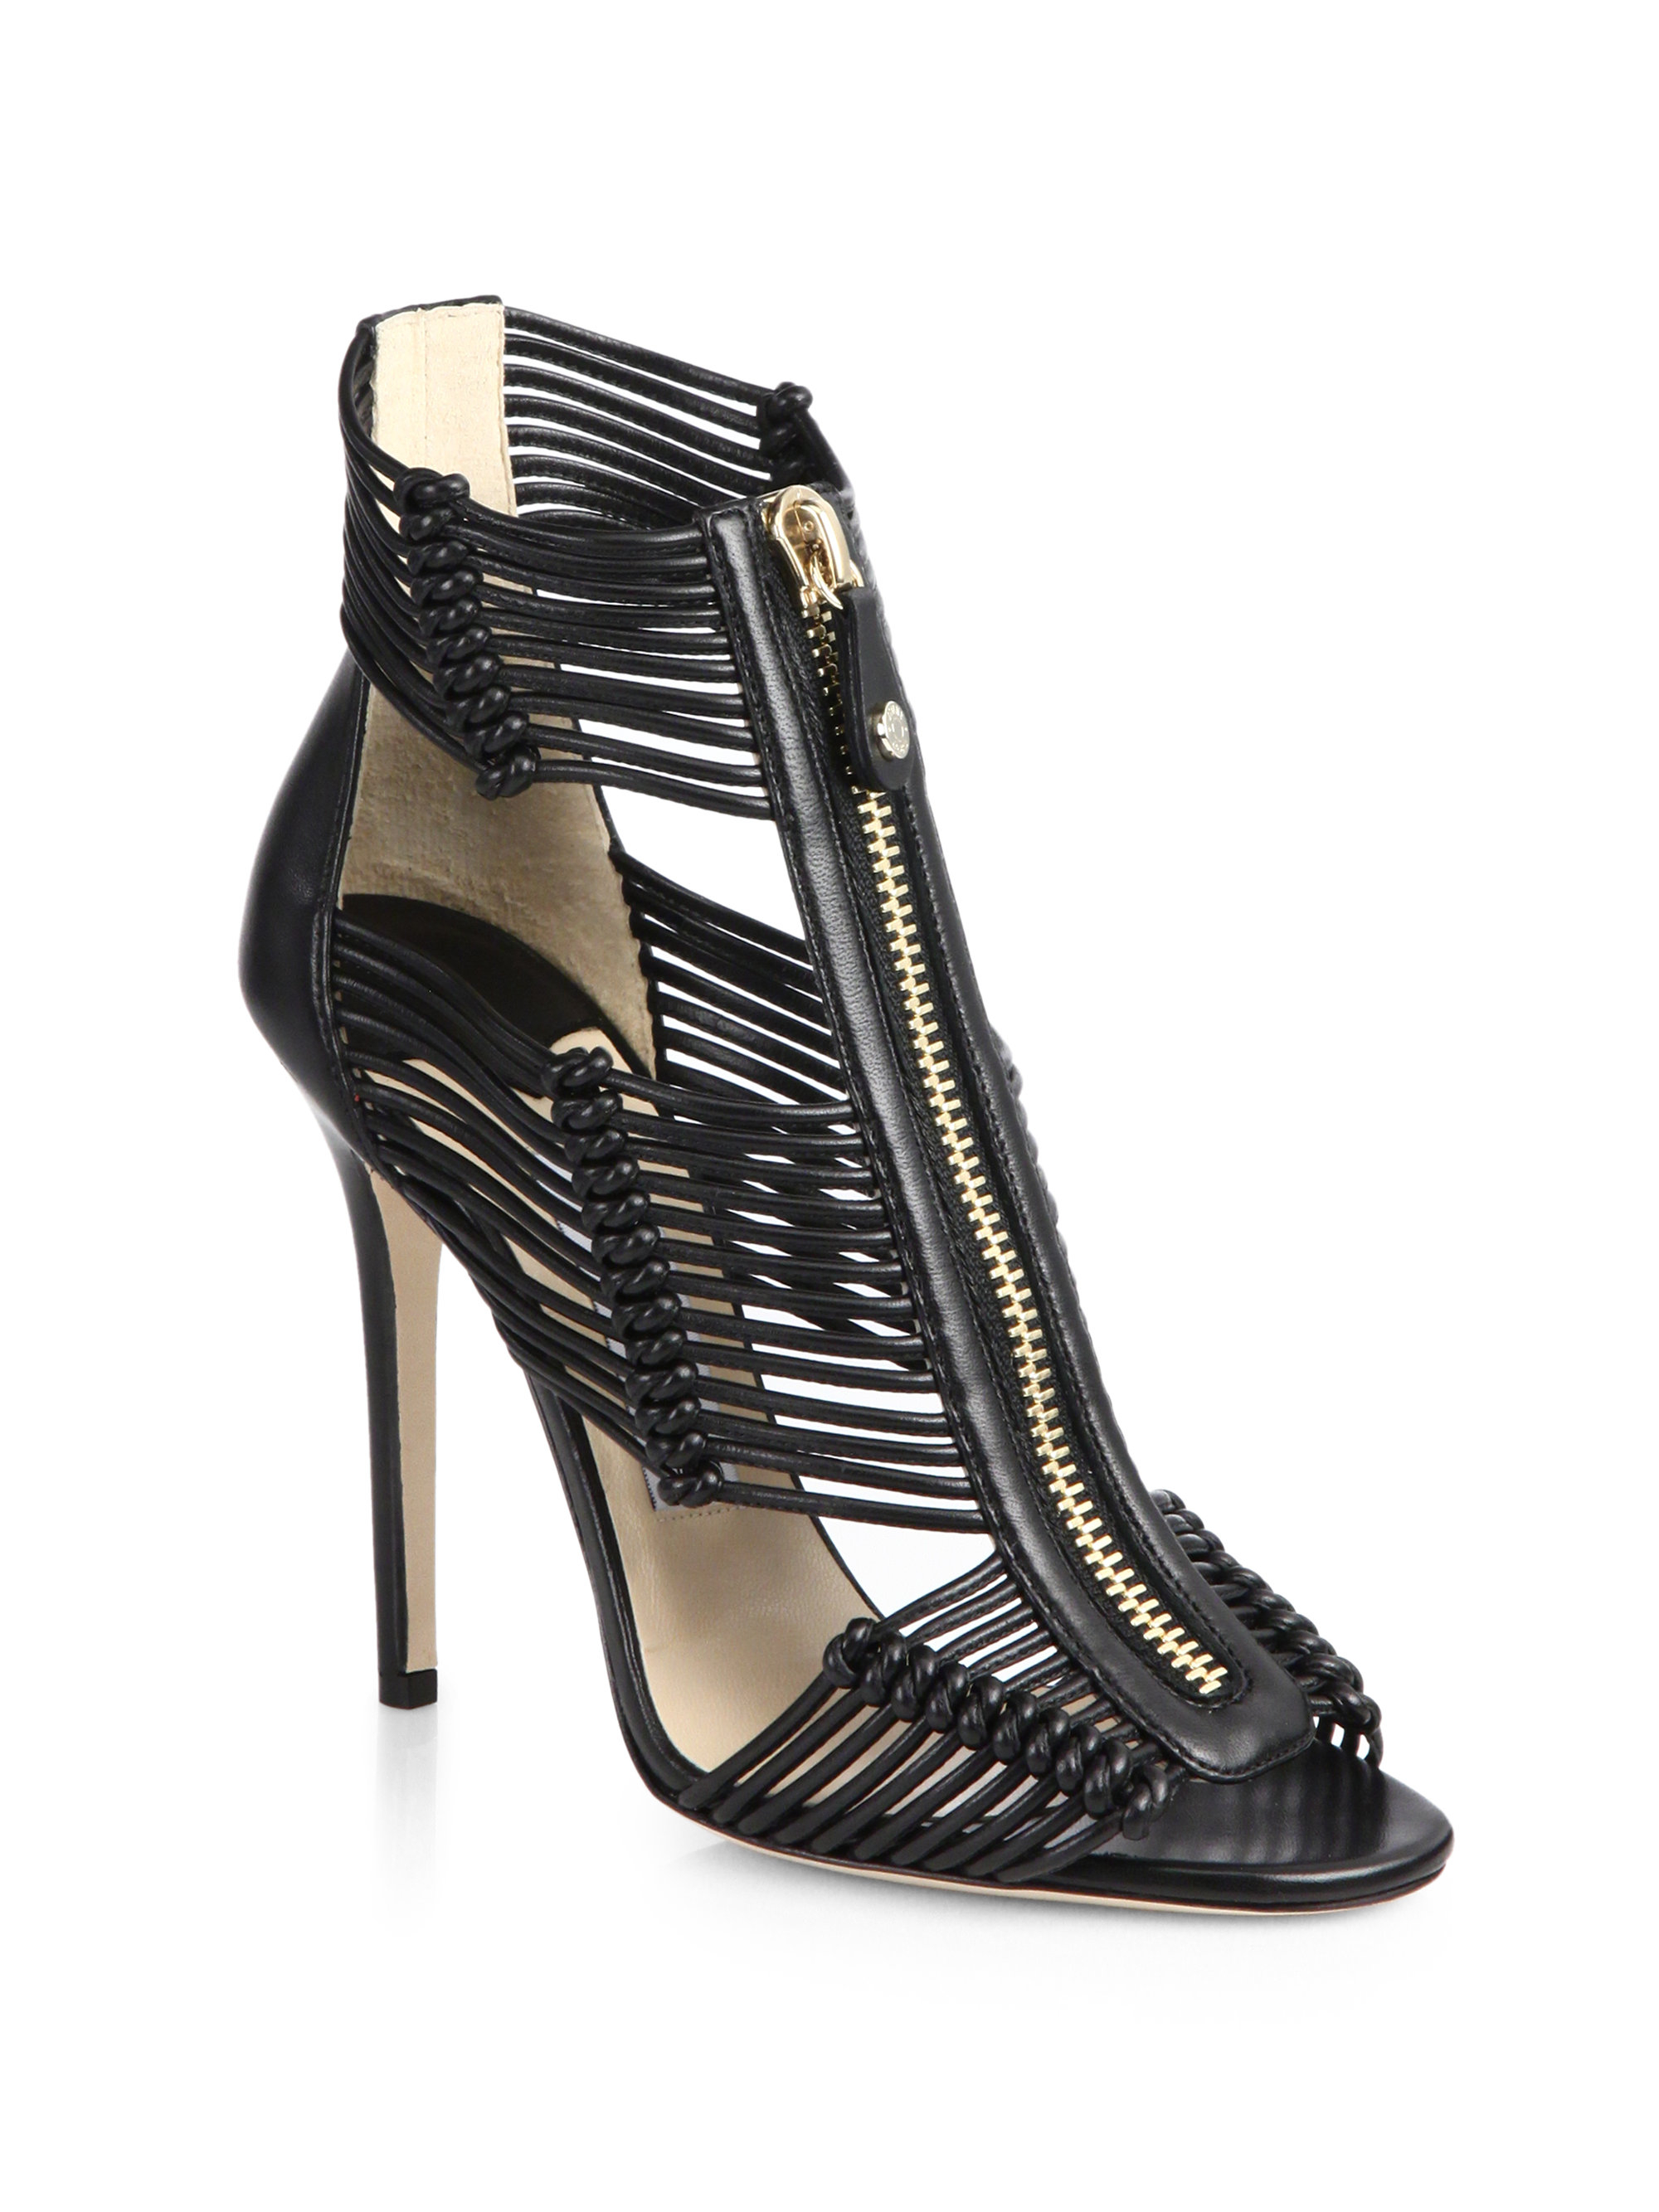 Lyst Jimmy Choo Kattie Zip Front Strappy Leather Sandals